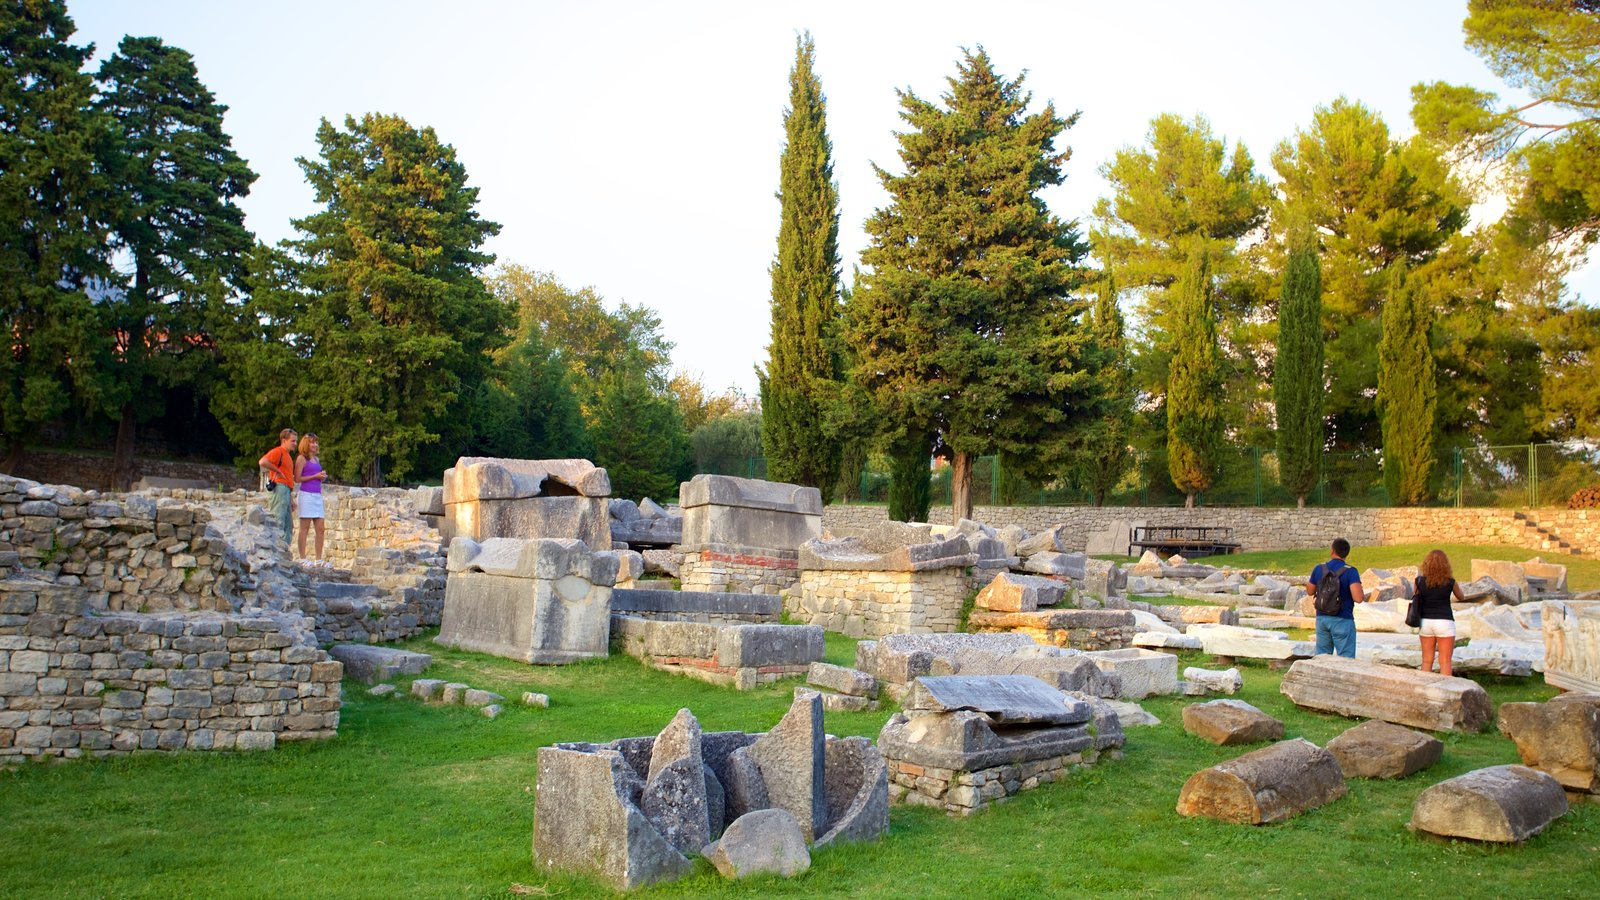 Salona Ruins showing heritage elements and building ruins as well as a small group of people